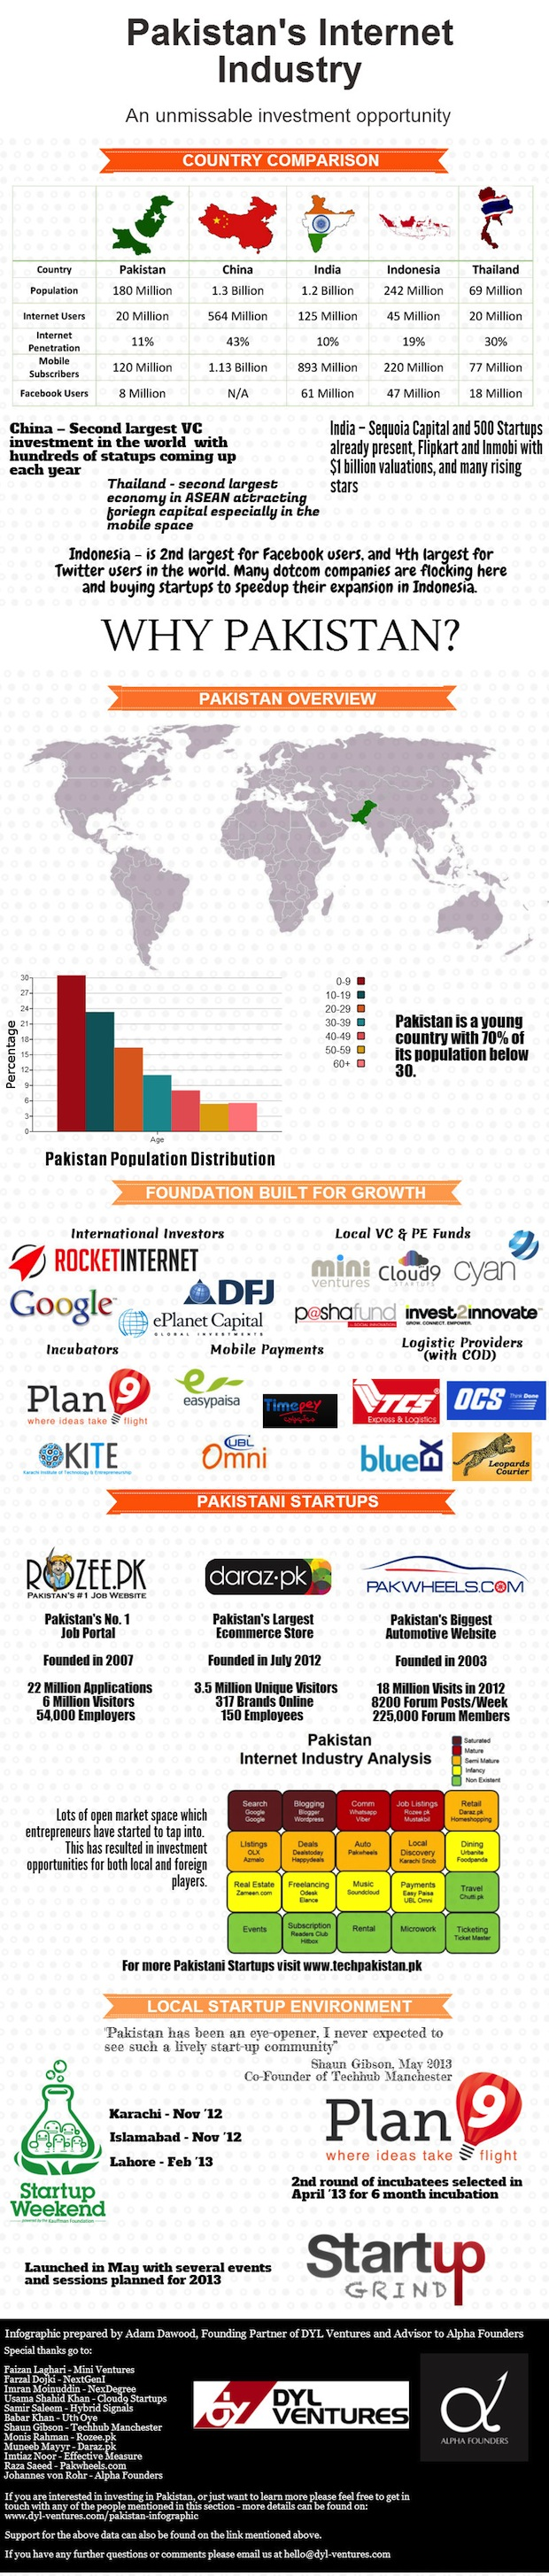 Pakistan-Startup-Ecosystem-Potential-2013-INFOGRAPHIC